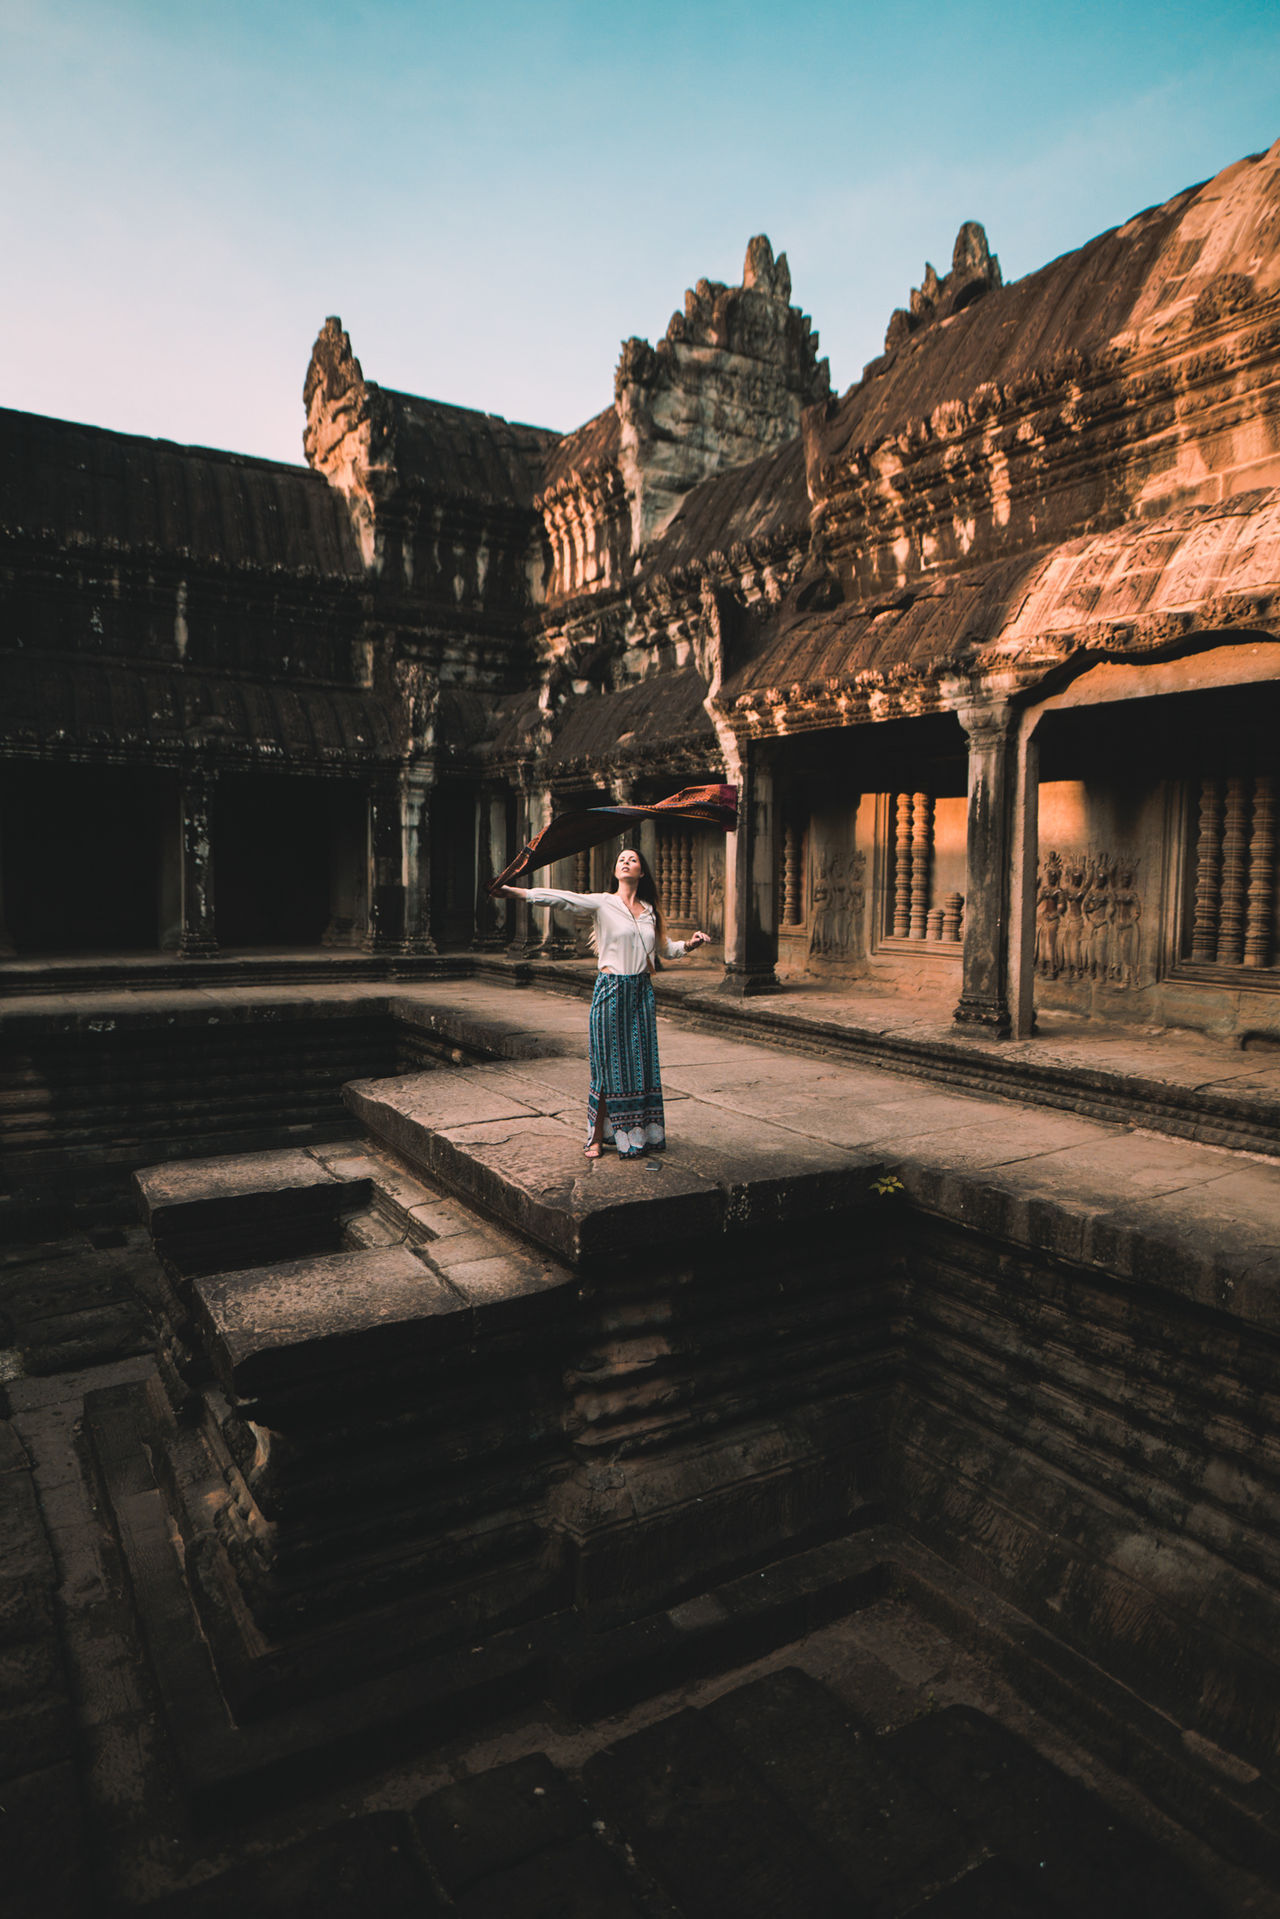 Something in the air Travel Adult One Person Travel Destinations Architecture Day Ancient Civilization Young Adult Standing Full Length One Woman Only Built Structure Culture Showcase May Angkor Wat Travel Travel Photography ASIA Cambodia Tourism Temple Wonder Of The World